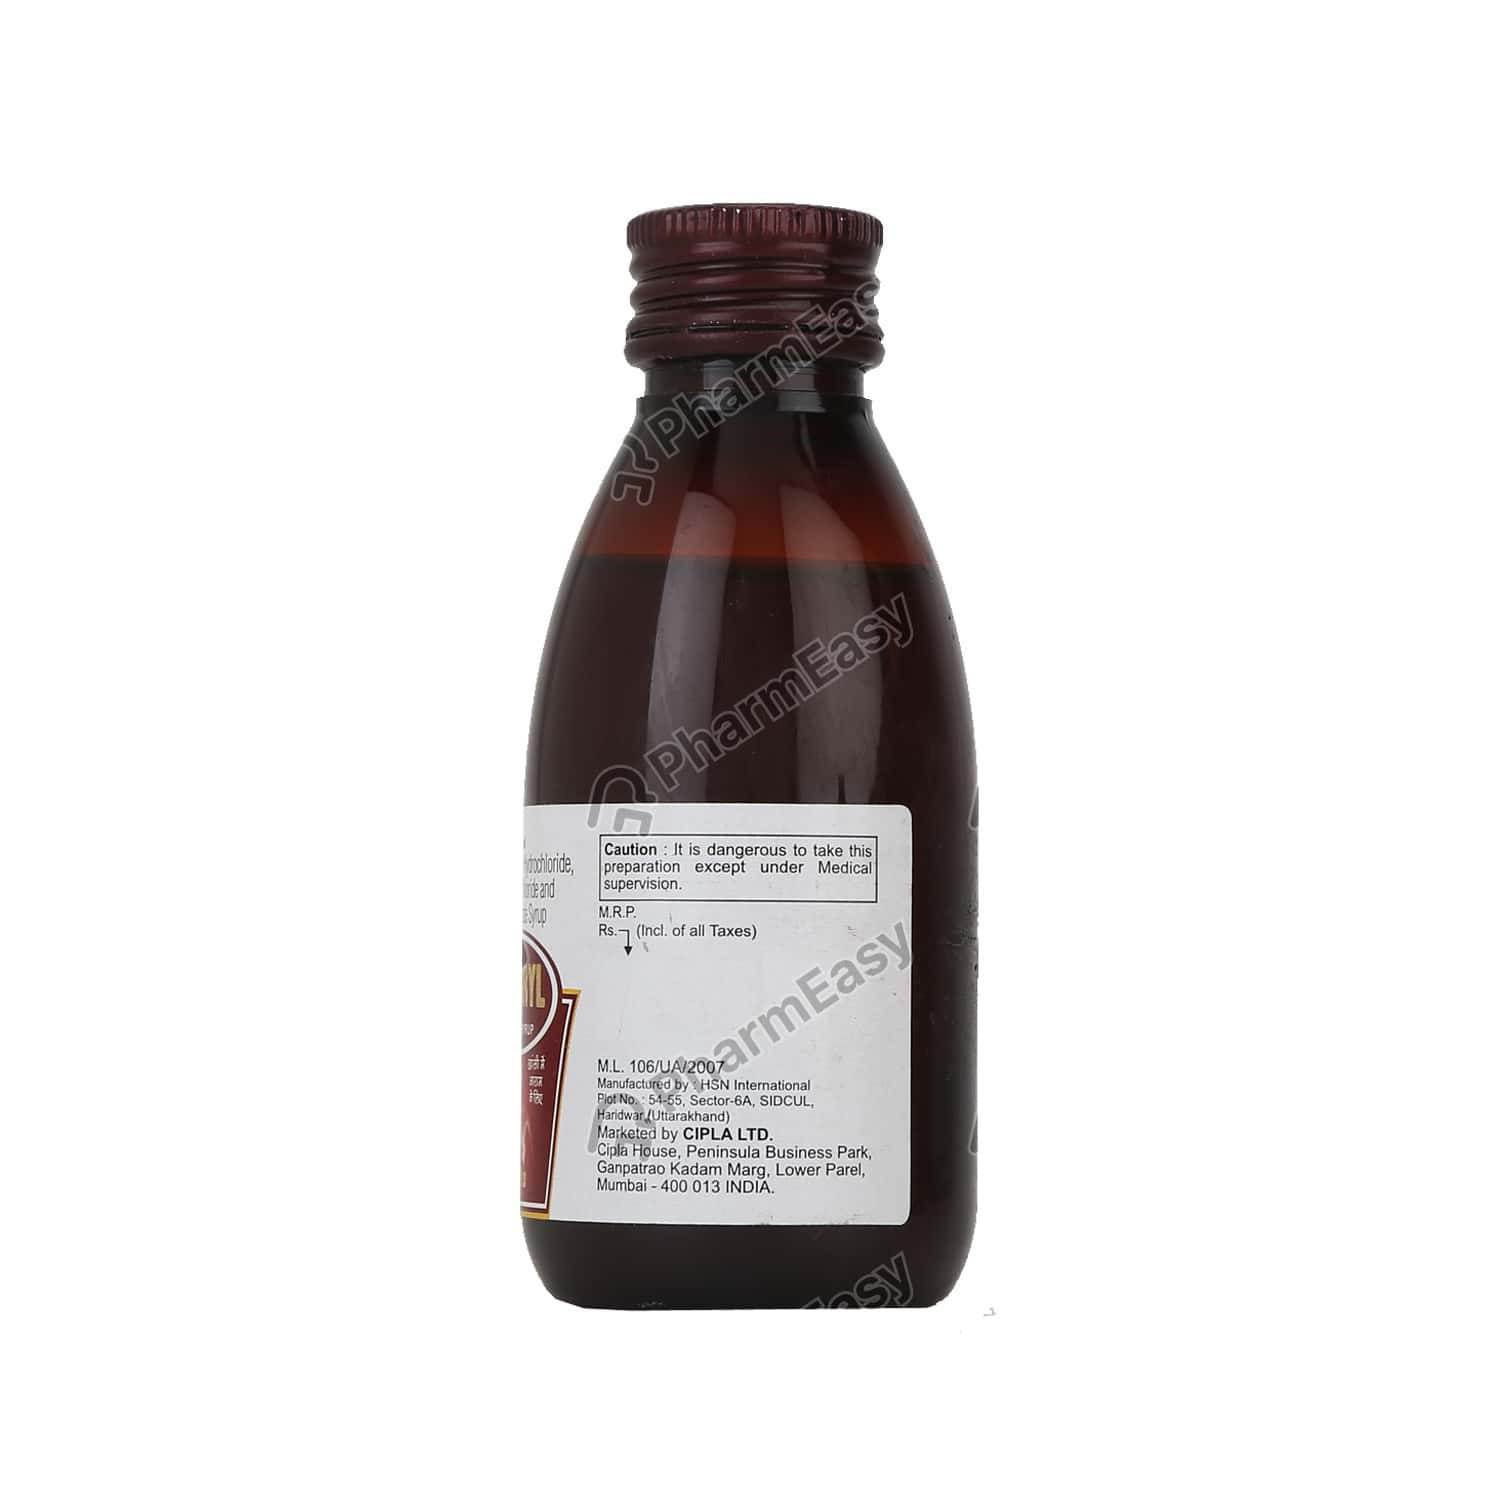 Cofryl Cough Syrup 100ml